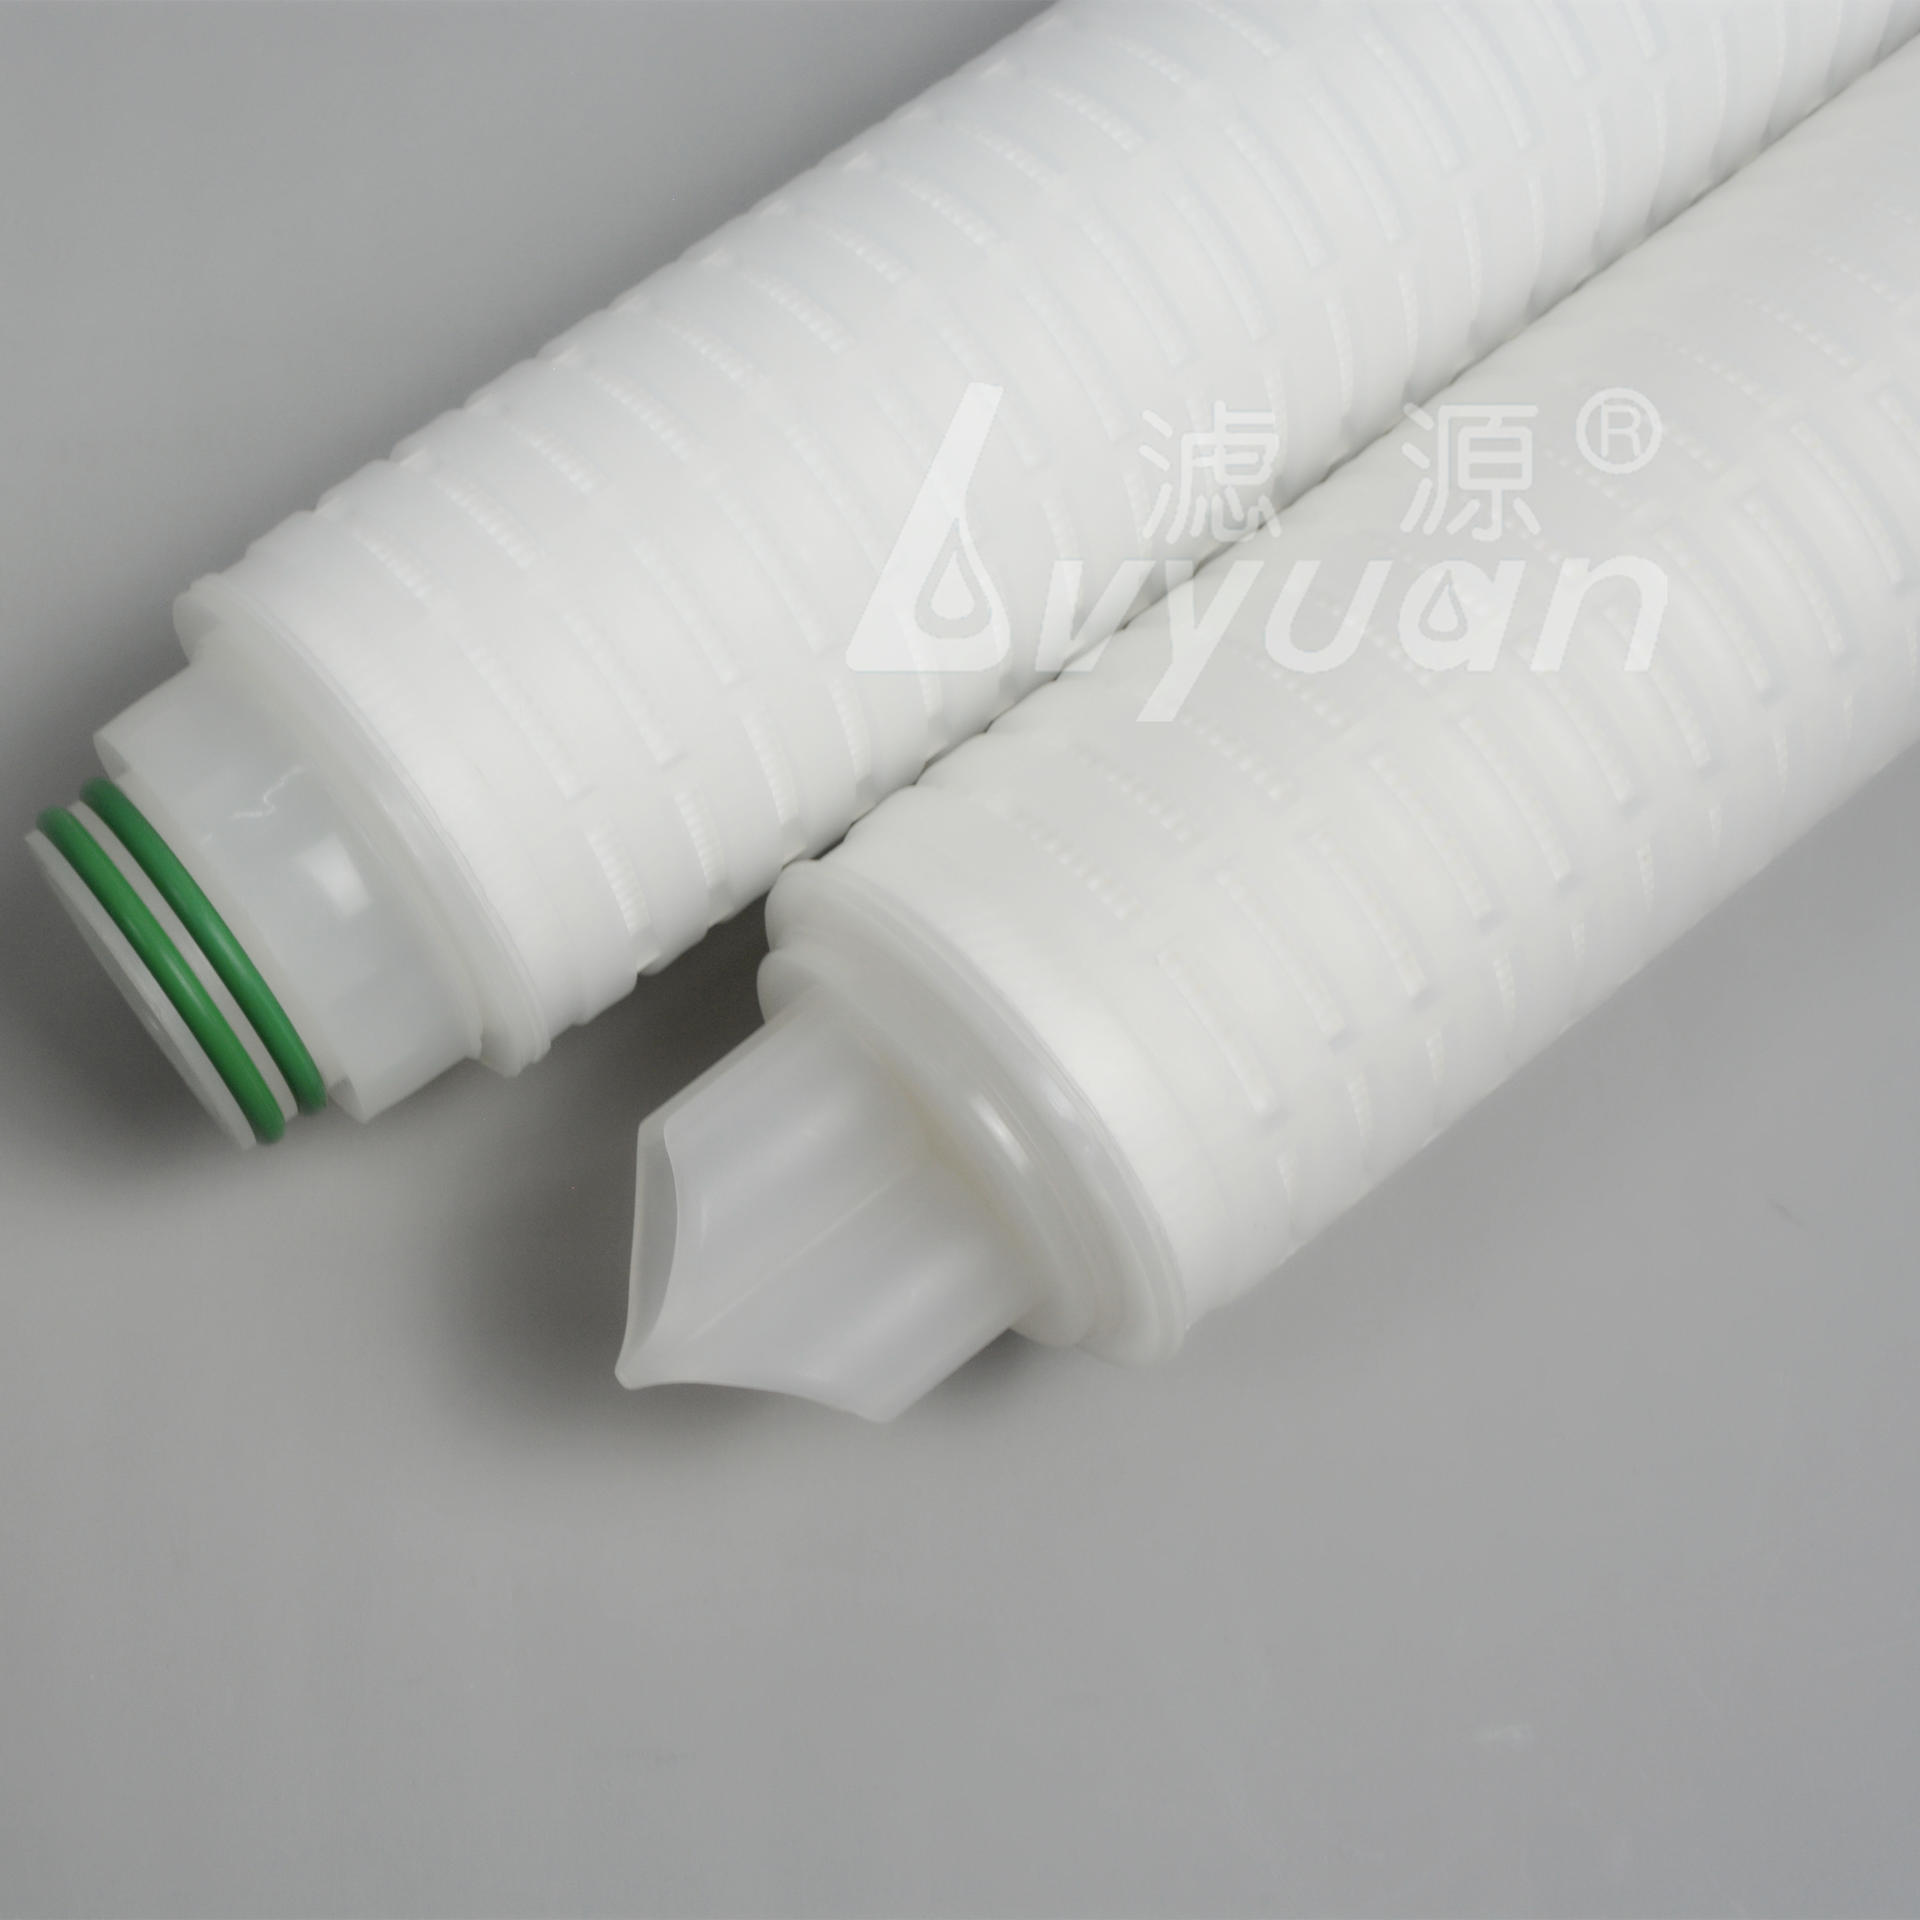 0.45um 5 inch 10 inch Industrial PTFE membrane replacement filter element pleated filter for gas/air filtration